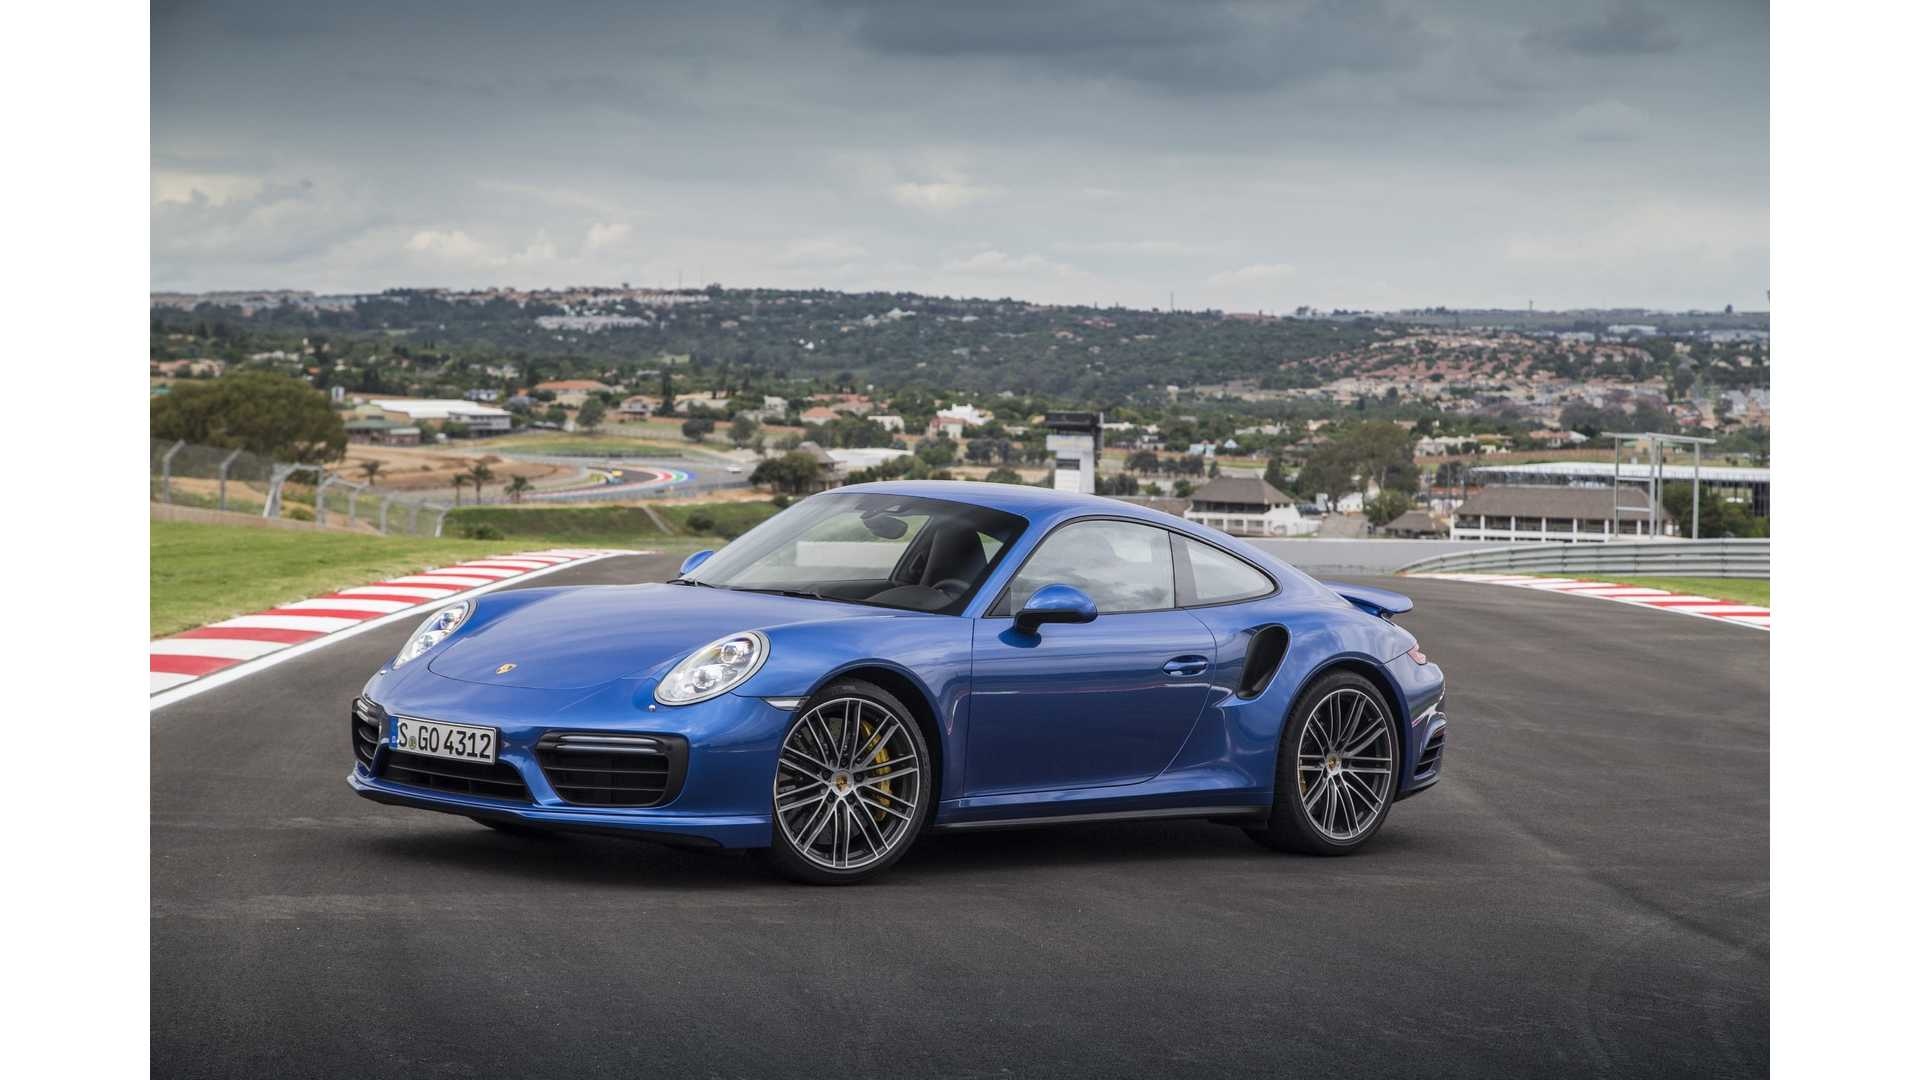 Car To Go >> Porsche Says 911 Will Be Its Last Car To Go Electric